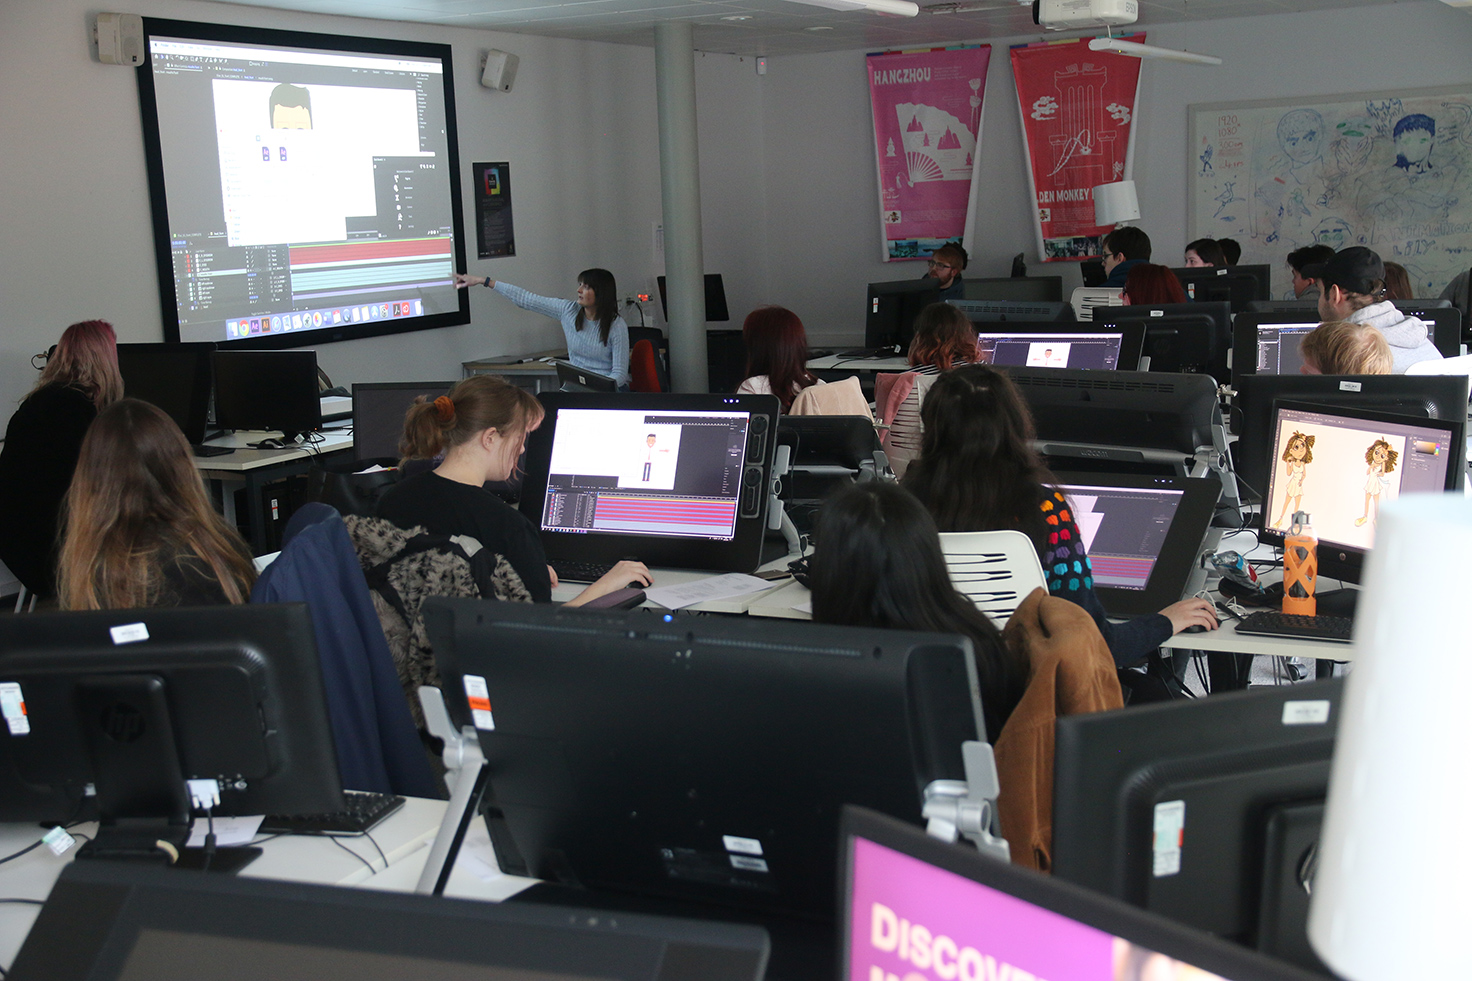 Past Edge Hill animation students teaching current Edge Hill animation students